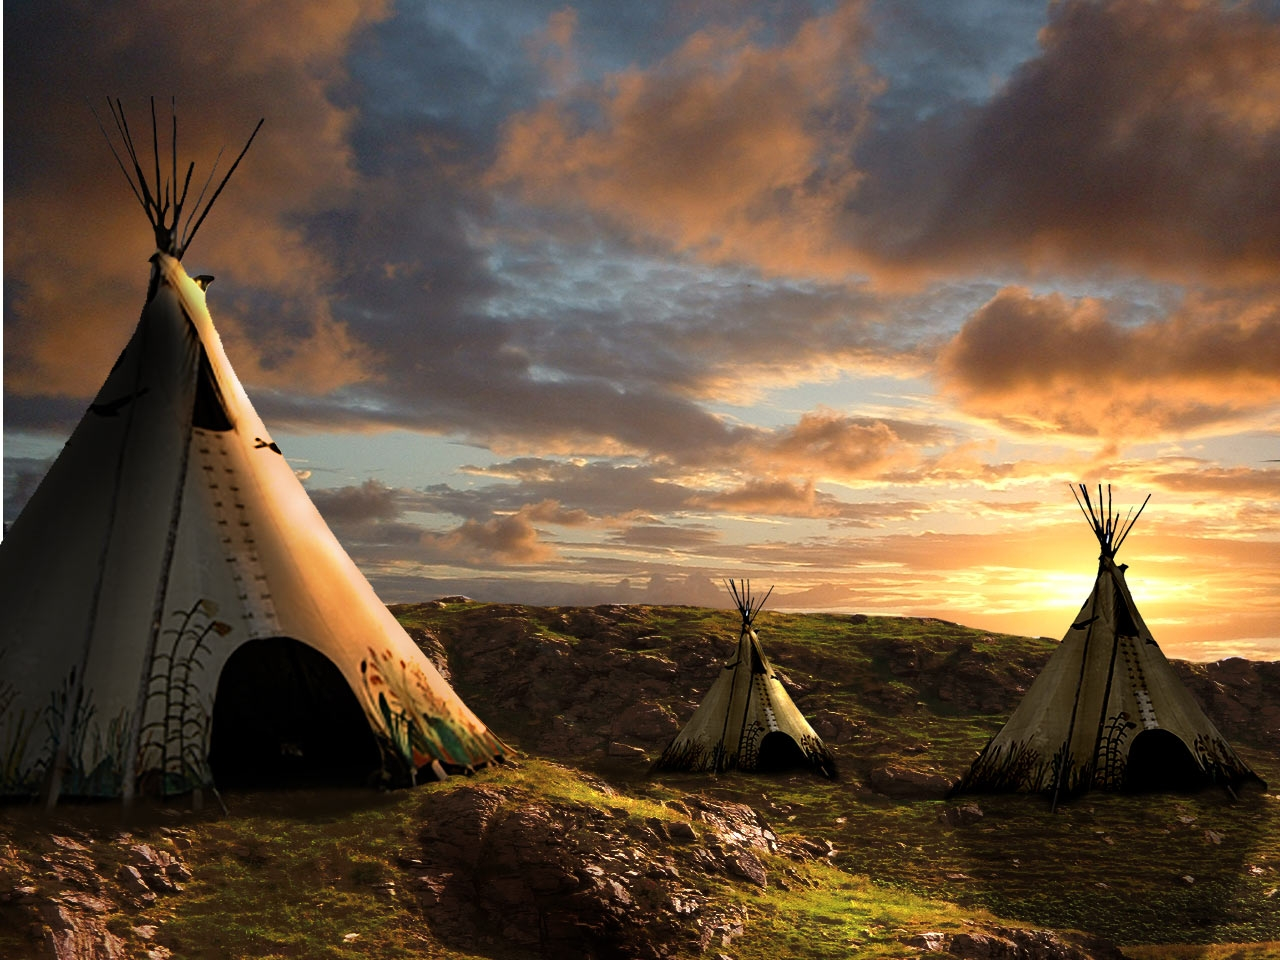 Sunset picture by George55 for teepee photoshop